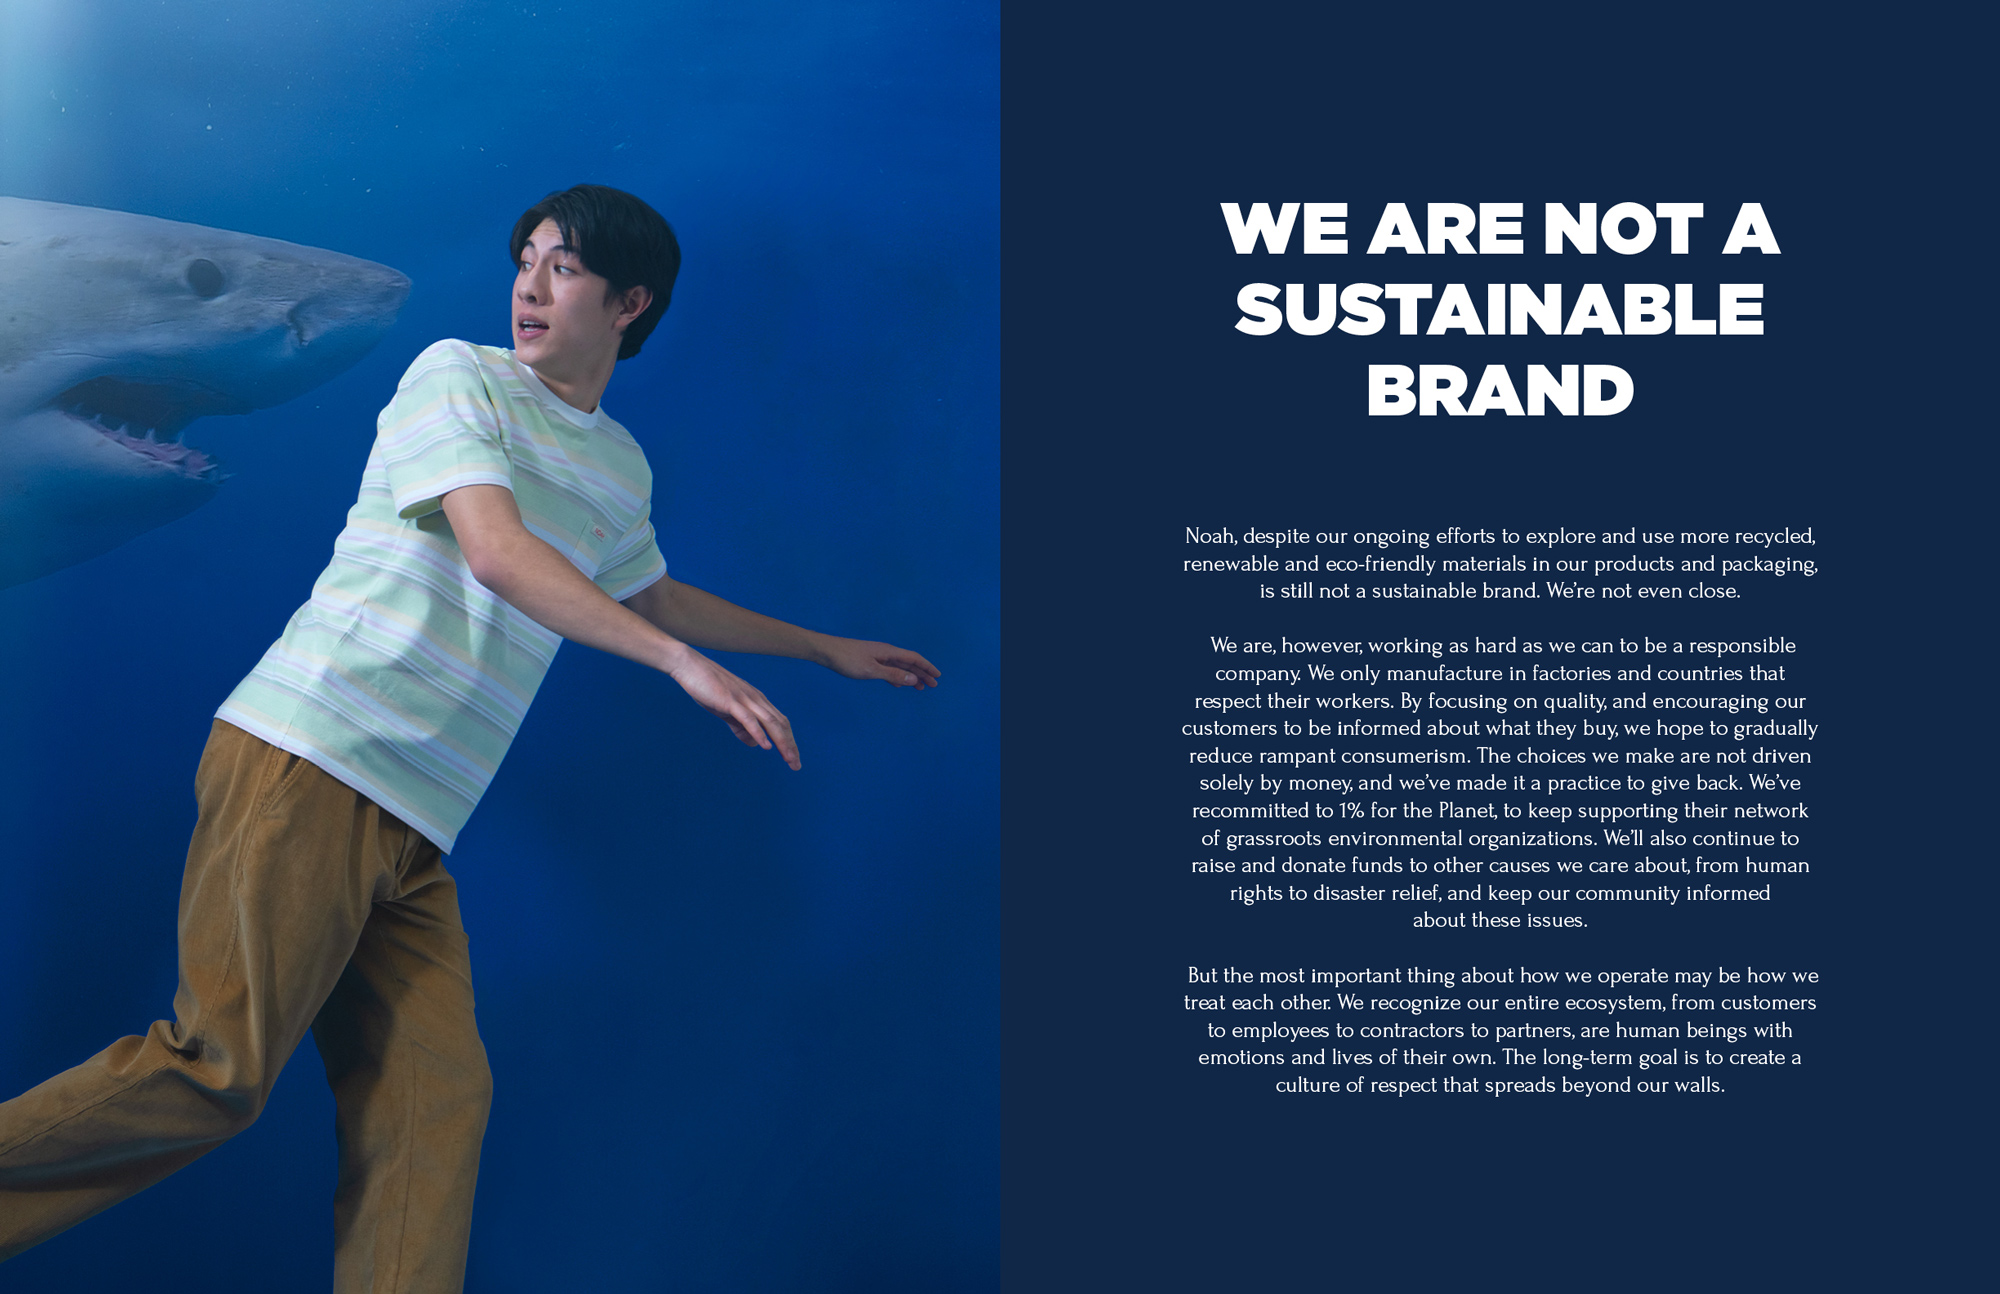 WE ARE NOT A SUSTAINABLE BRAND